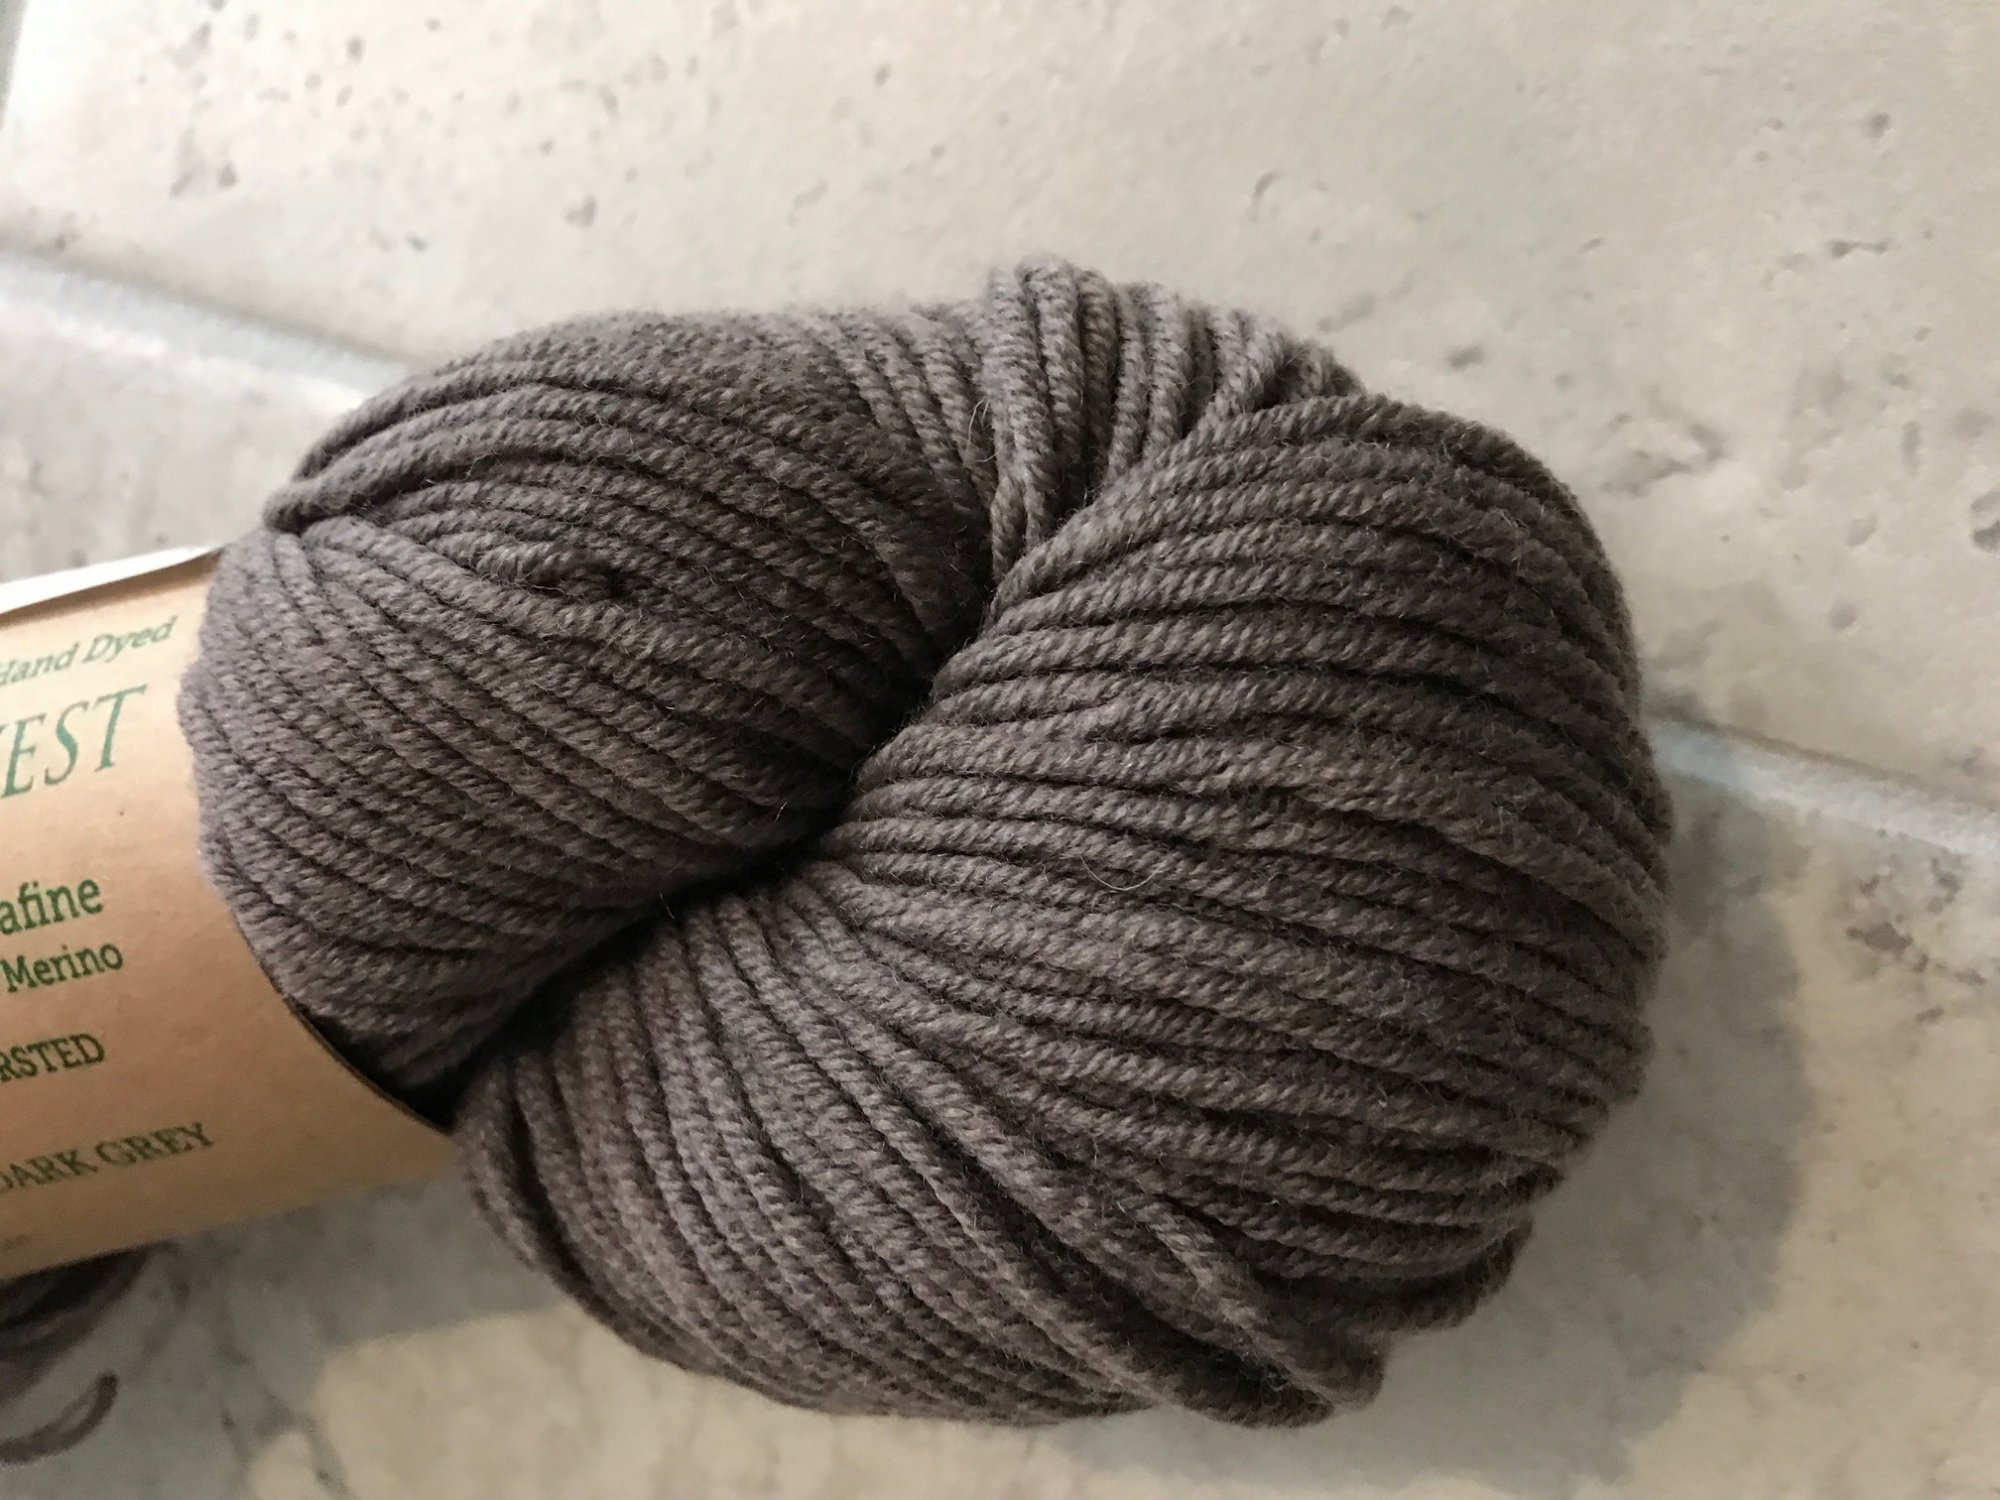 Harvest Worsted by Urth